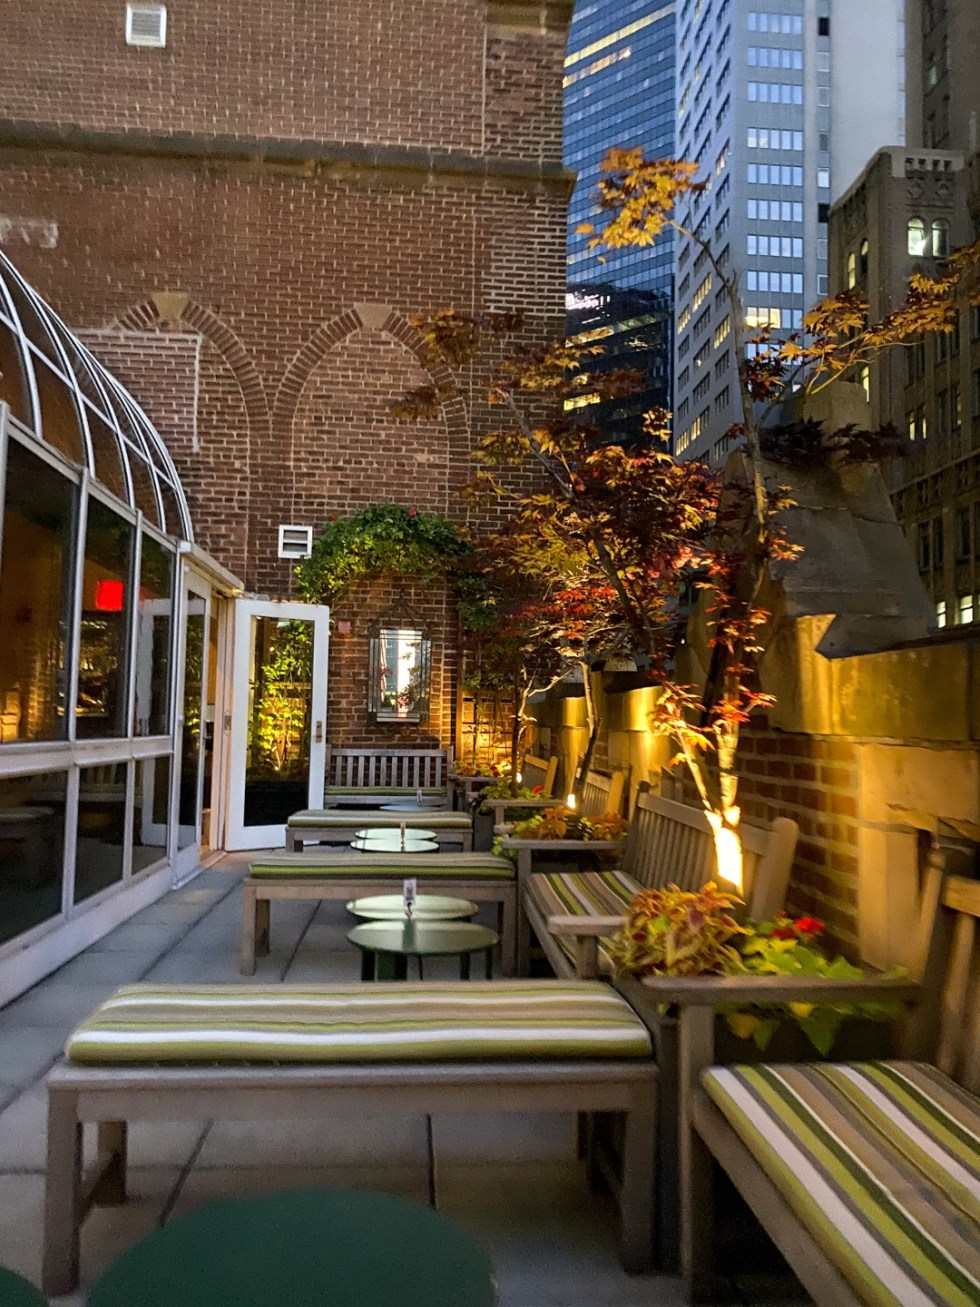 NYC Summer Weekend: Things to Do in NYC in the Summer - I'm Fixin' To - @imfixintoblog   NYC Summer Weekend by popular NC travel blog, I'm Fixin' To: image of a patio with black round coffee tables and wooden benches with tan and green stripe cushions.